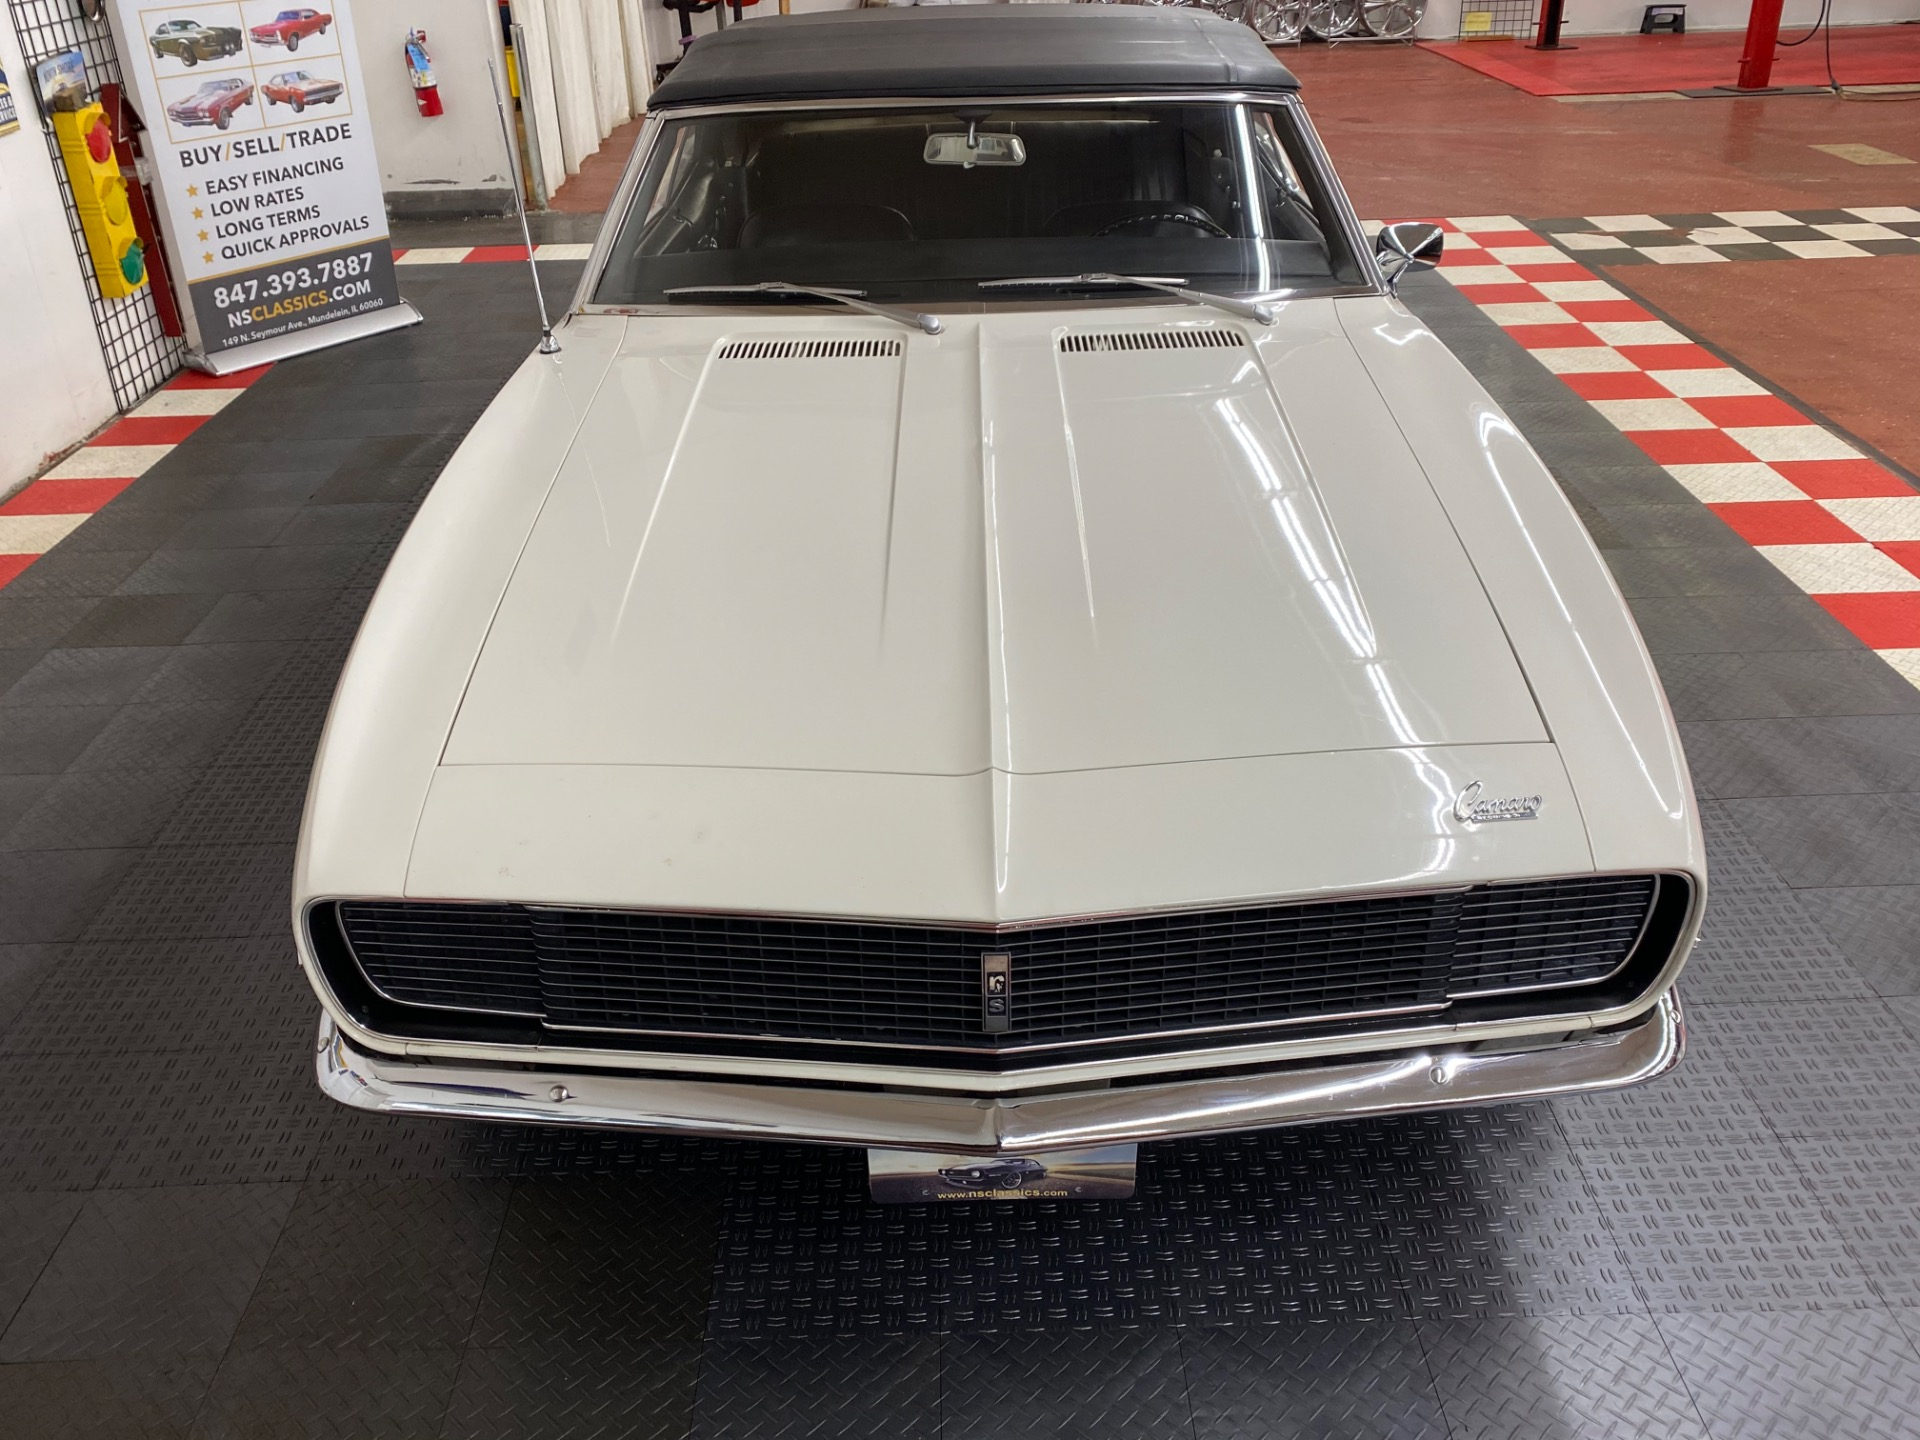 Used 1968 Chevrolet Camaro - RALLY SPORT CONVERTIBLE - VERY ORIGINAL CONDITION - ZZENITH AWARD WINNER | Mundelein, IL